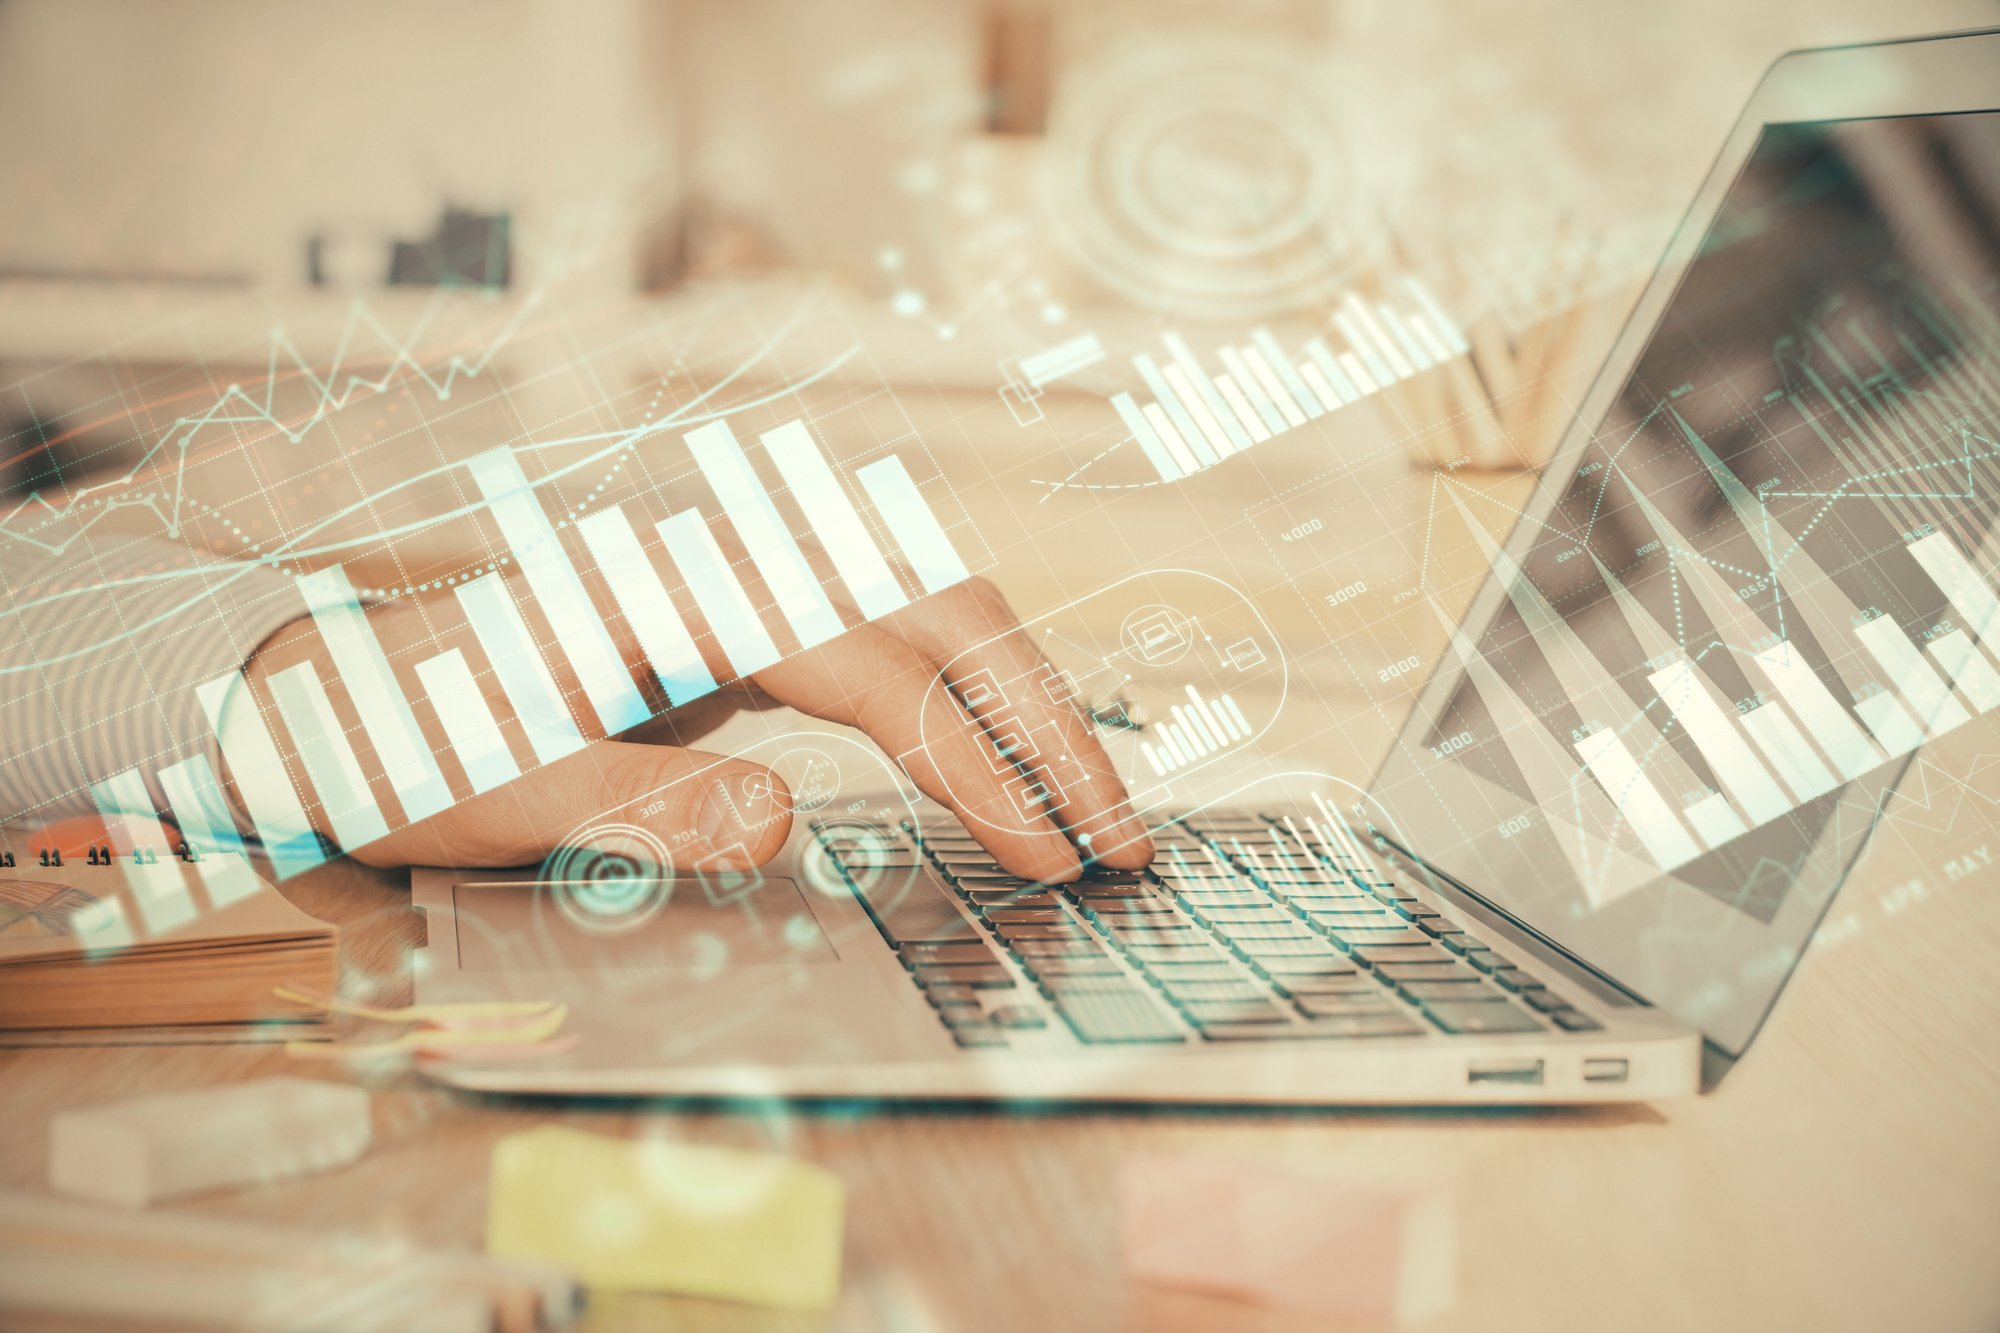 Double exposure of stock market graph with man working on laptop on background. Concept of financial analysis